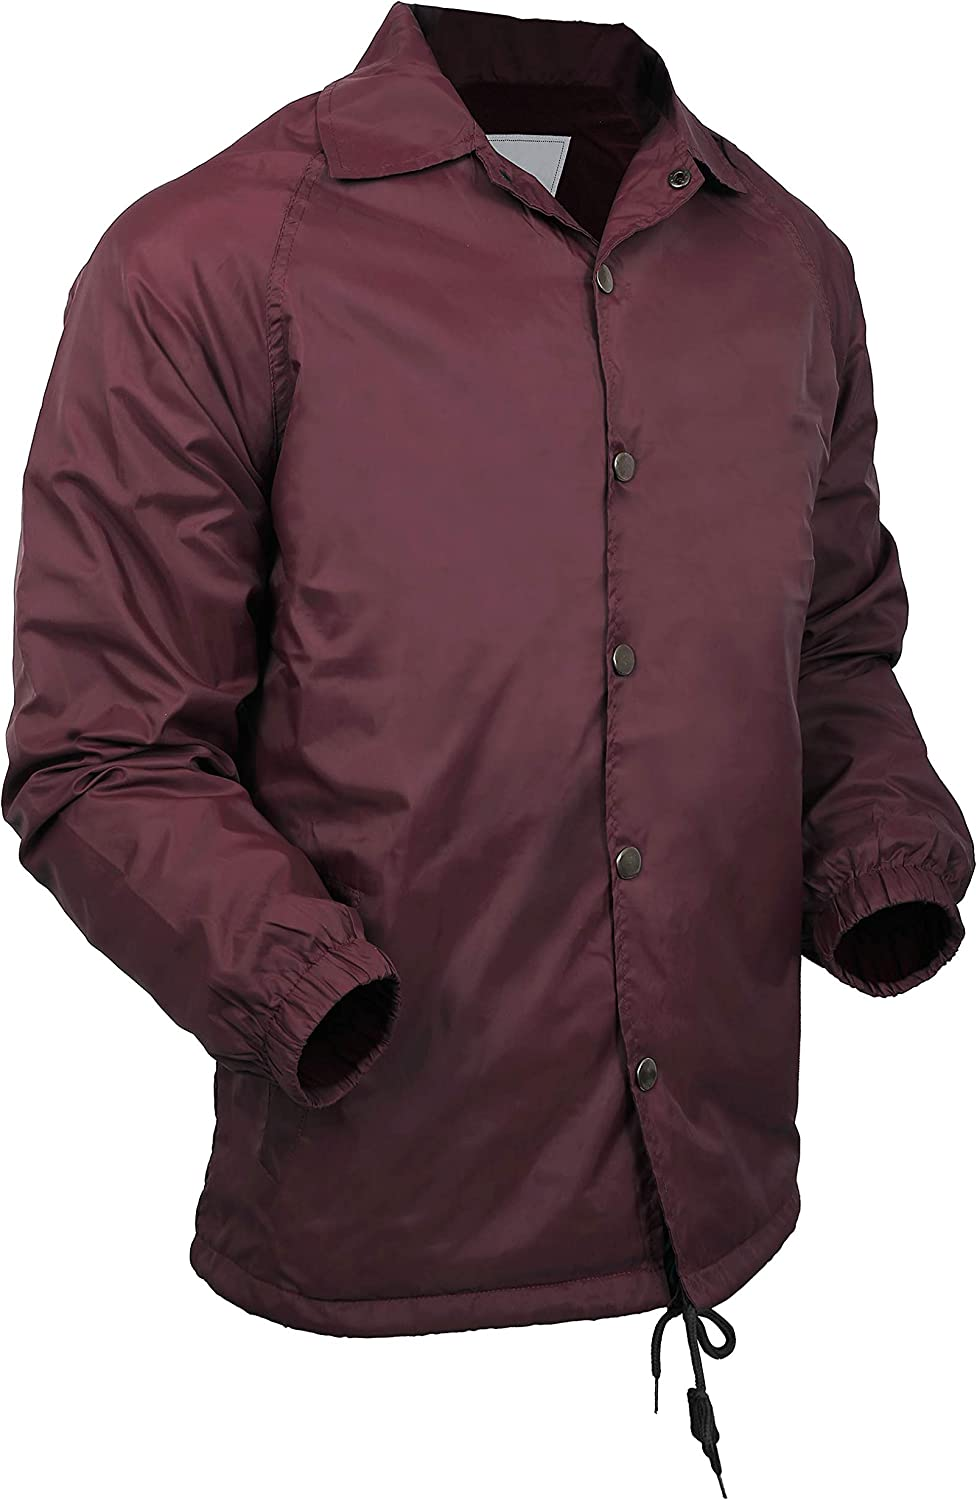 Hat and Beyond Casual Coaches Jacket Lightweight Active Unisex Windbreaker Coat